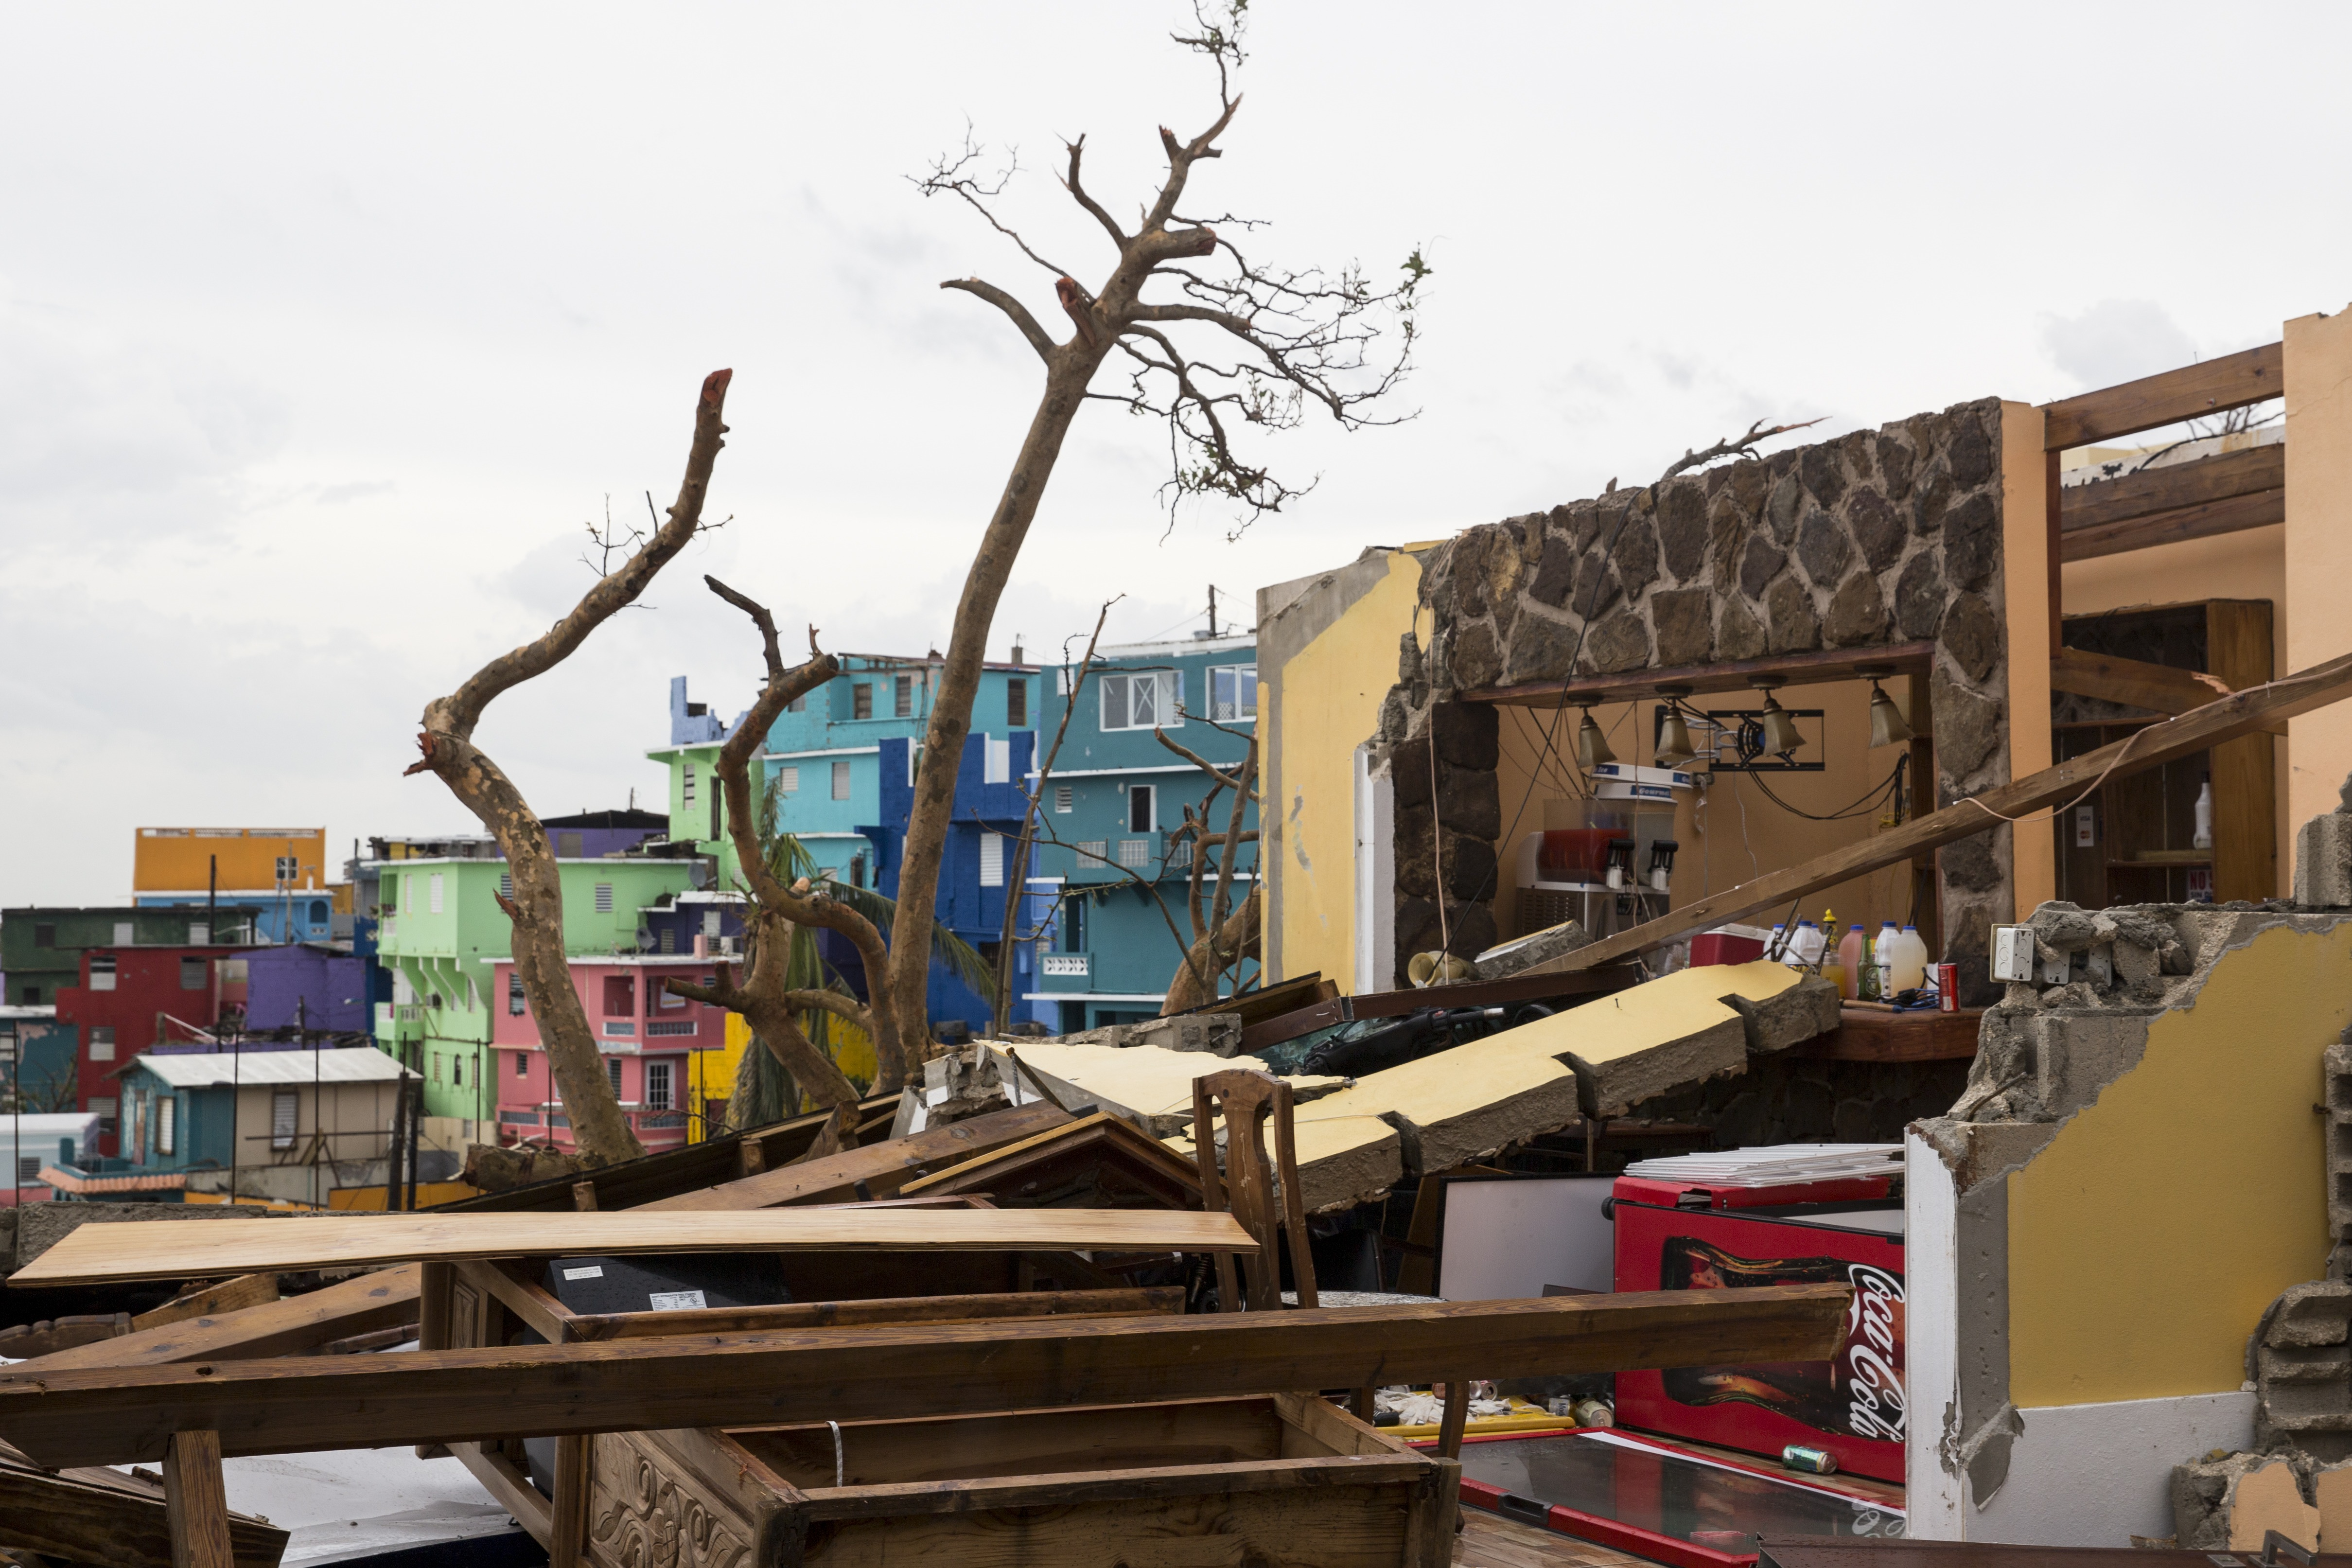 Puerto Rico In The Aftermath Of Hurricane Maria